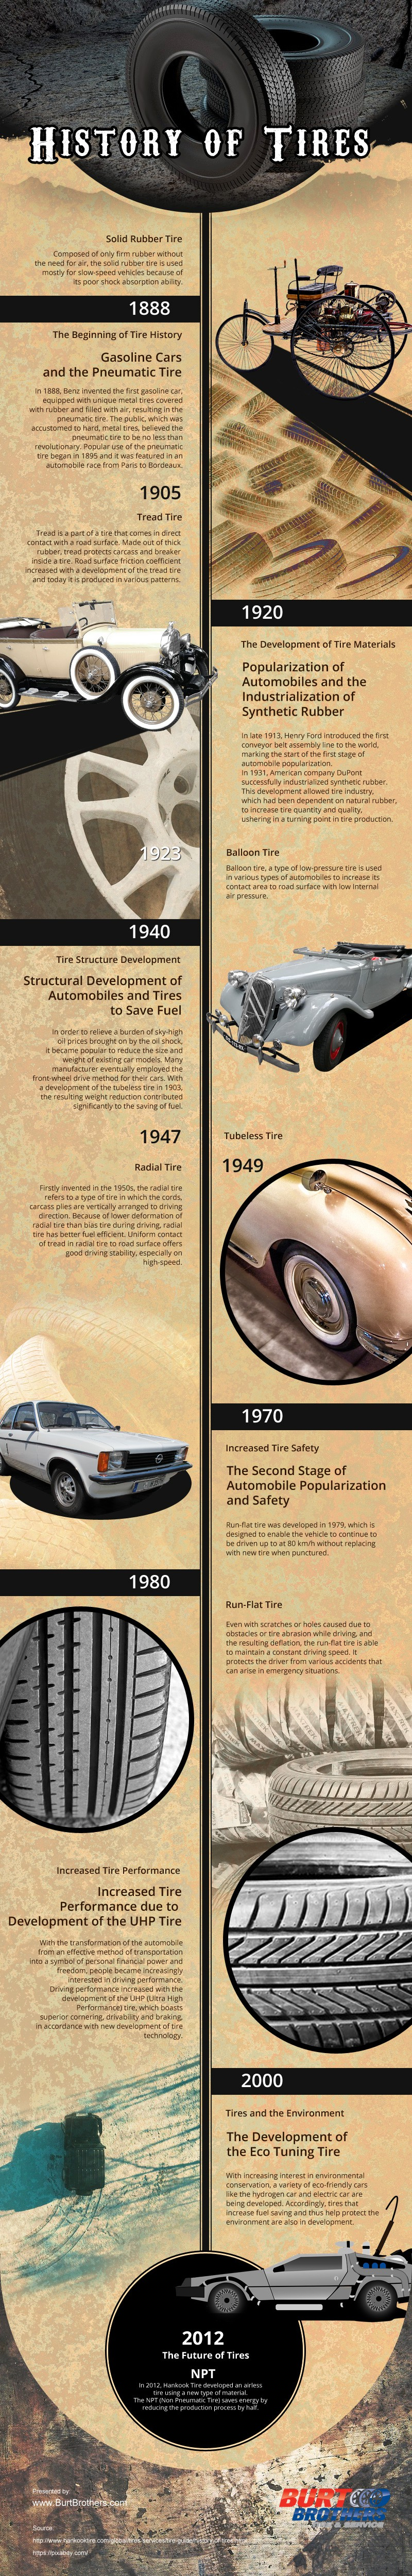 History of Tires [infographic]